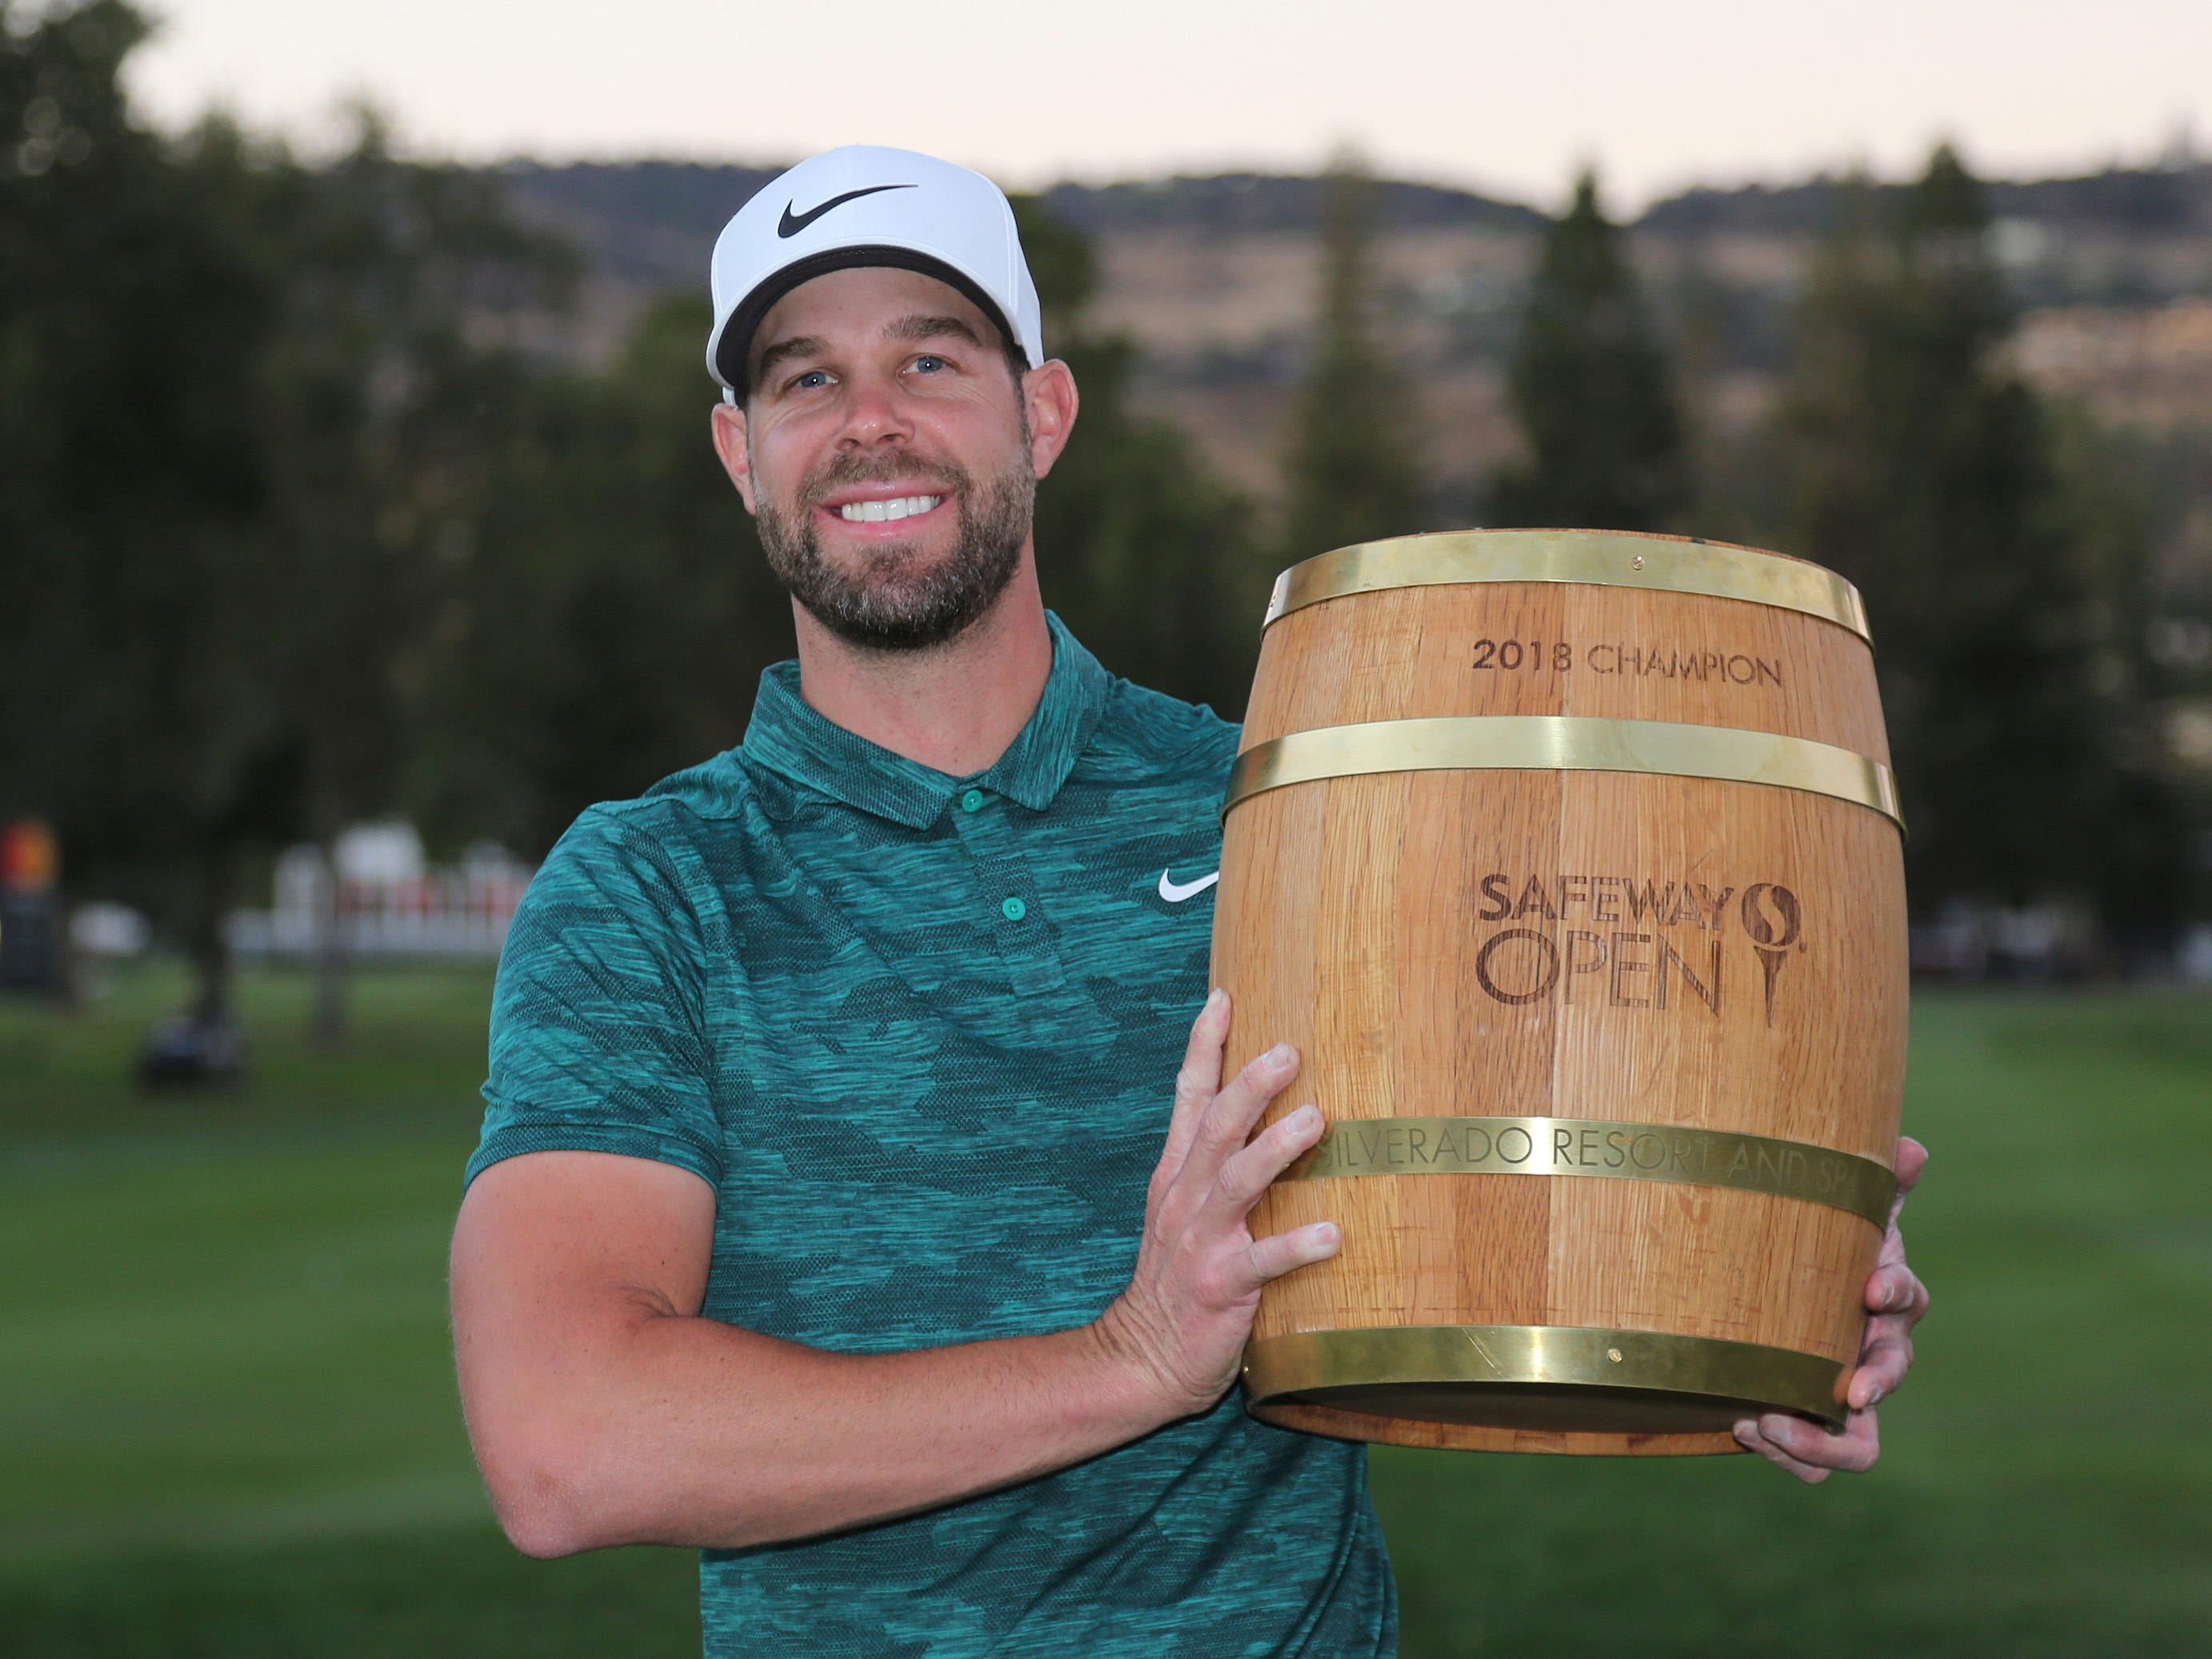 Oct. 7: Kevin Tway poses with his trophy on the 18th green of the Silverado Resort North Course after winning the Safeway Open.